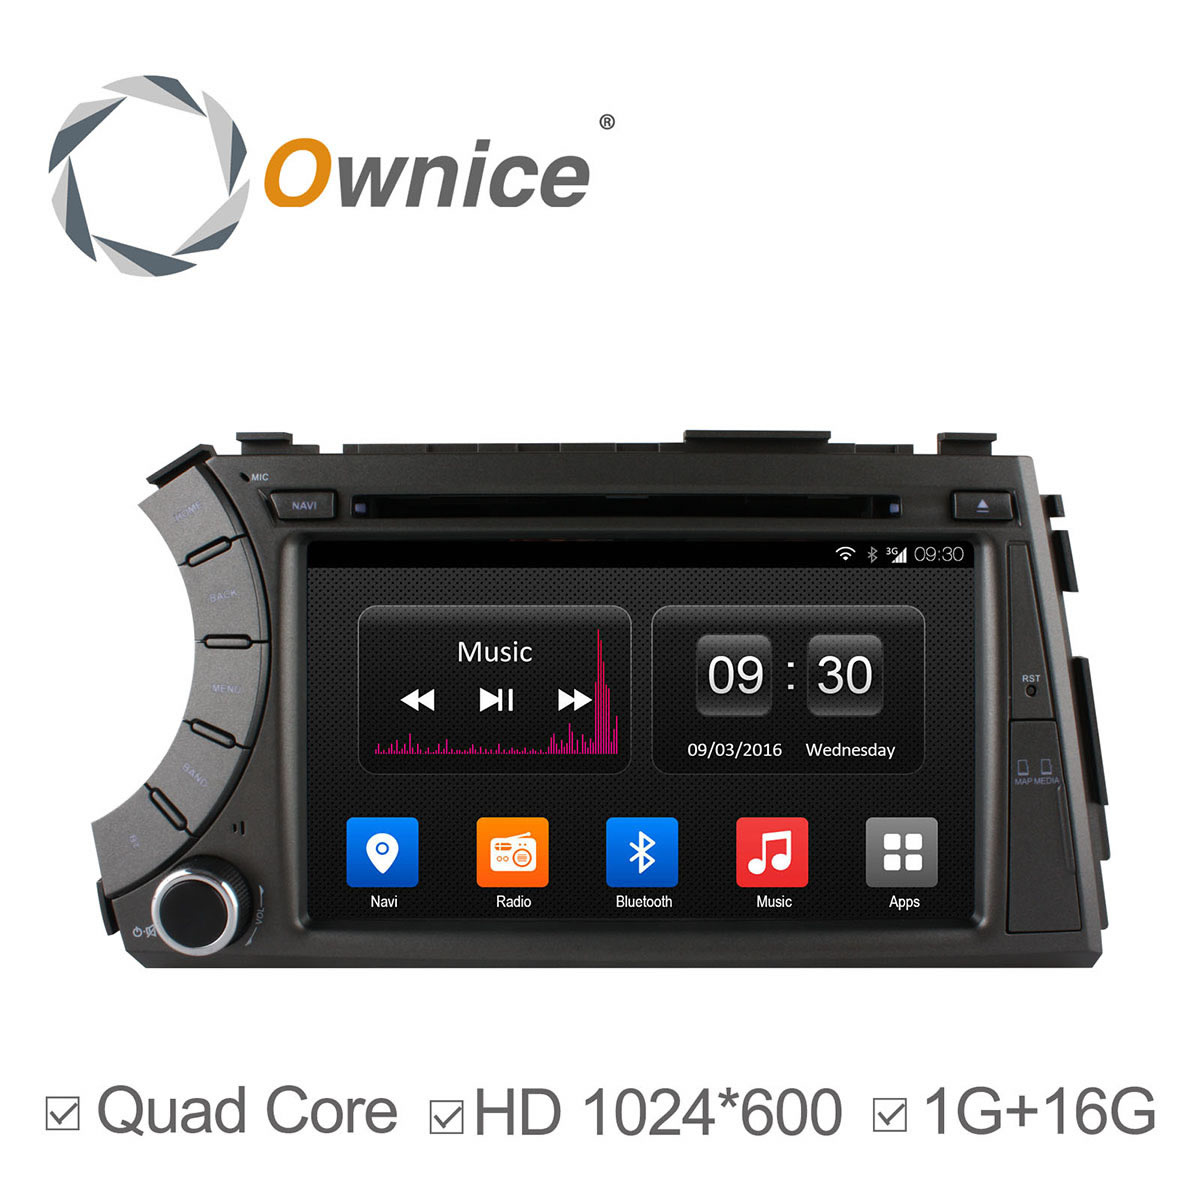 1024*600 Android 4.4 2 din Quad Core Car DVD for ssangyong Actyon Kyron with car gps radio BT support DAB+ TPMS mirror link ipod(China (Mainland))